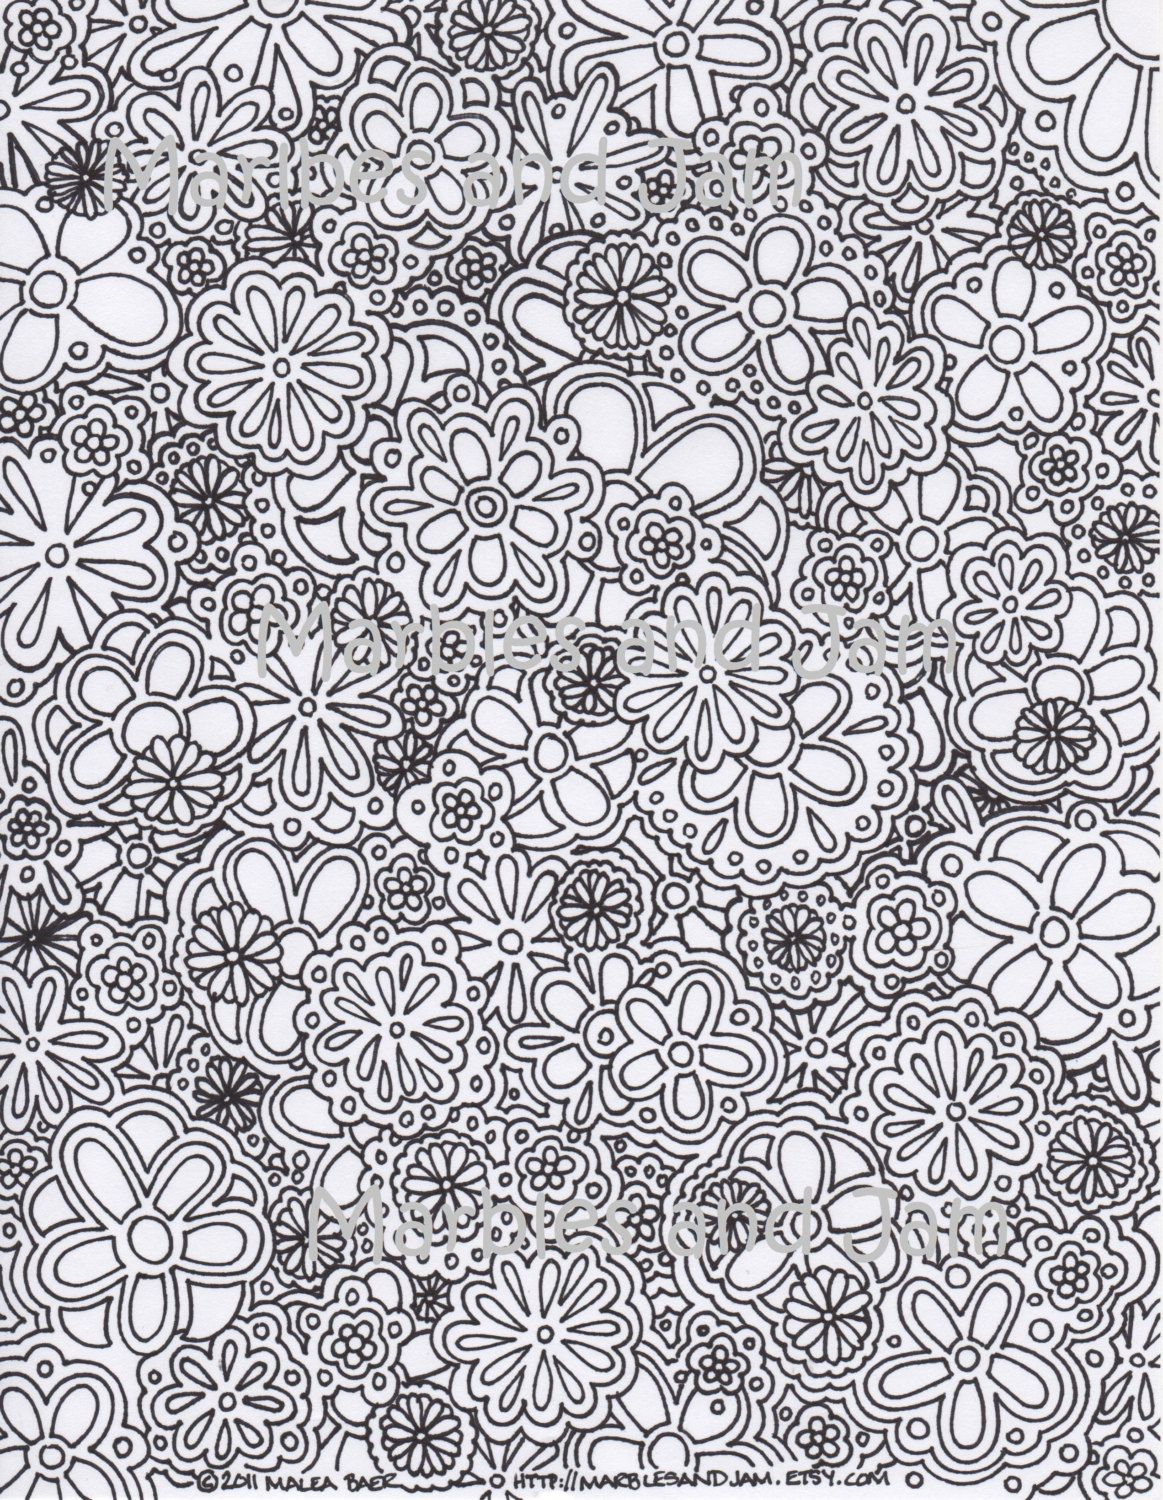 Coloring pages for adults abstract - Items Similar To Flowers Abstract Adult Printable Coloring Page On Etsy